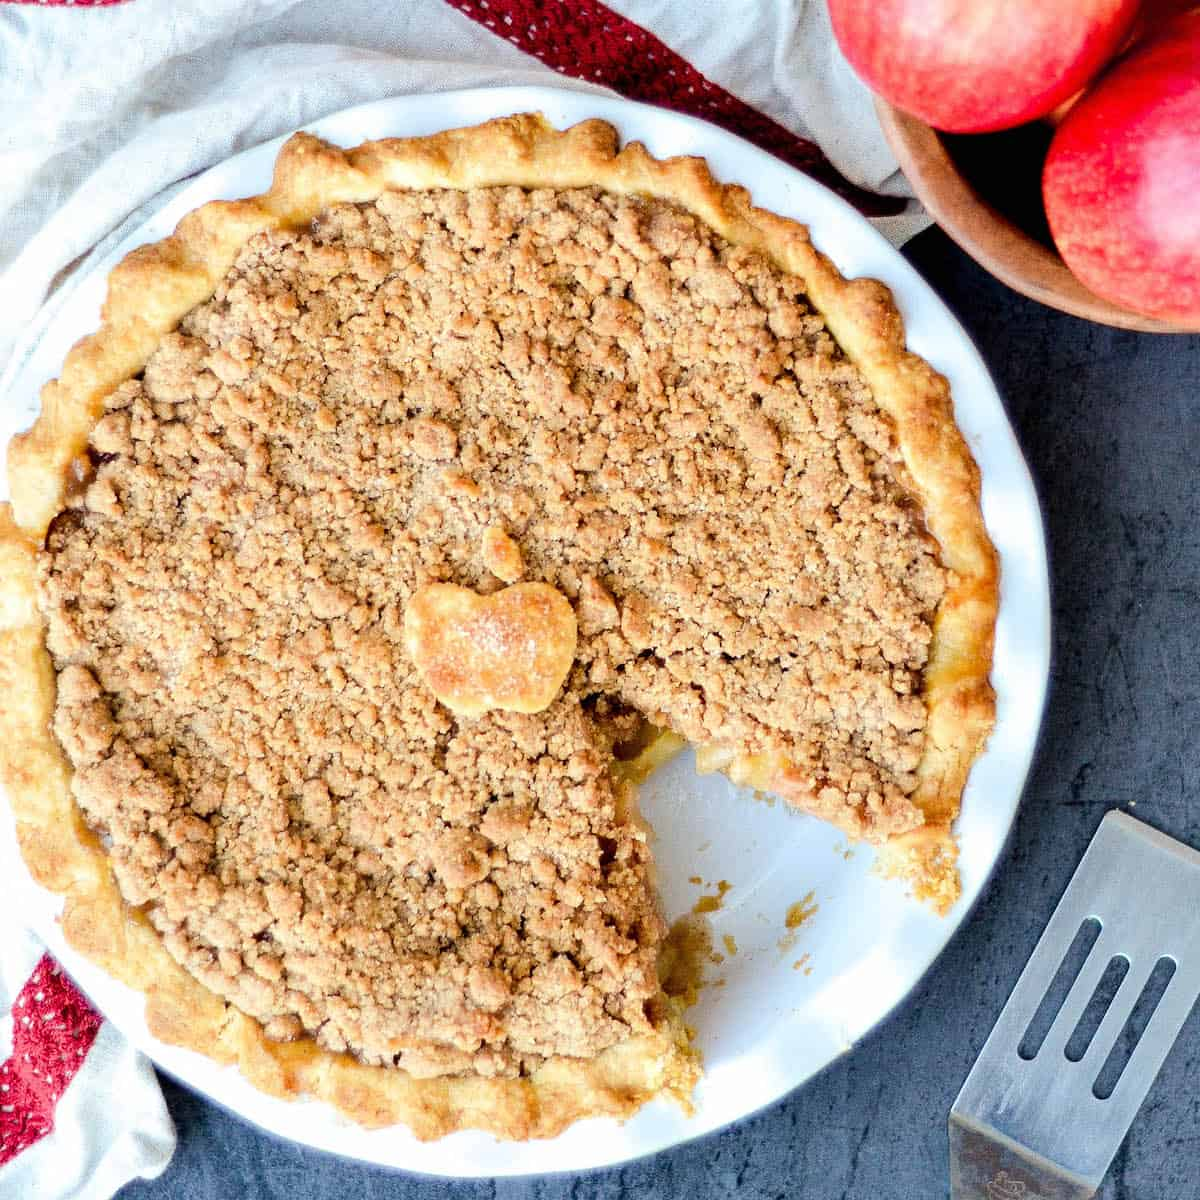 Overhead view of a pie dish with The best homemade Apple Crumble Pie with a piece removed.